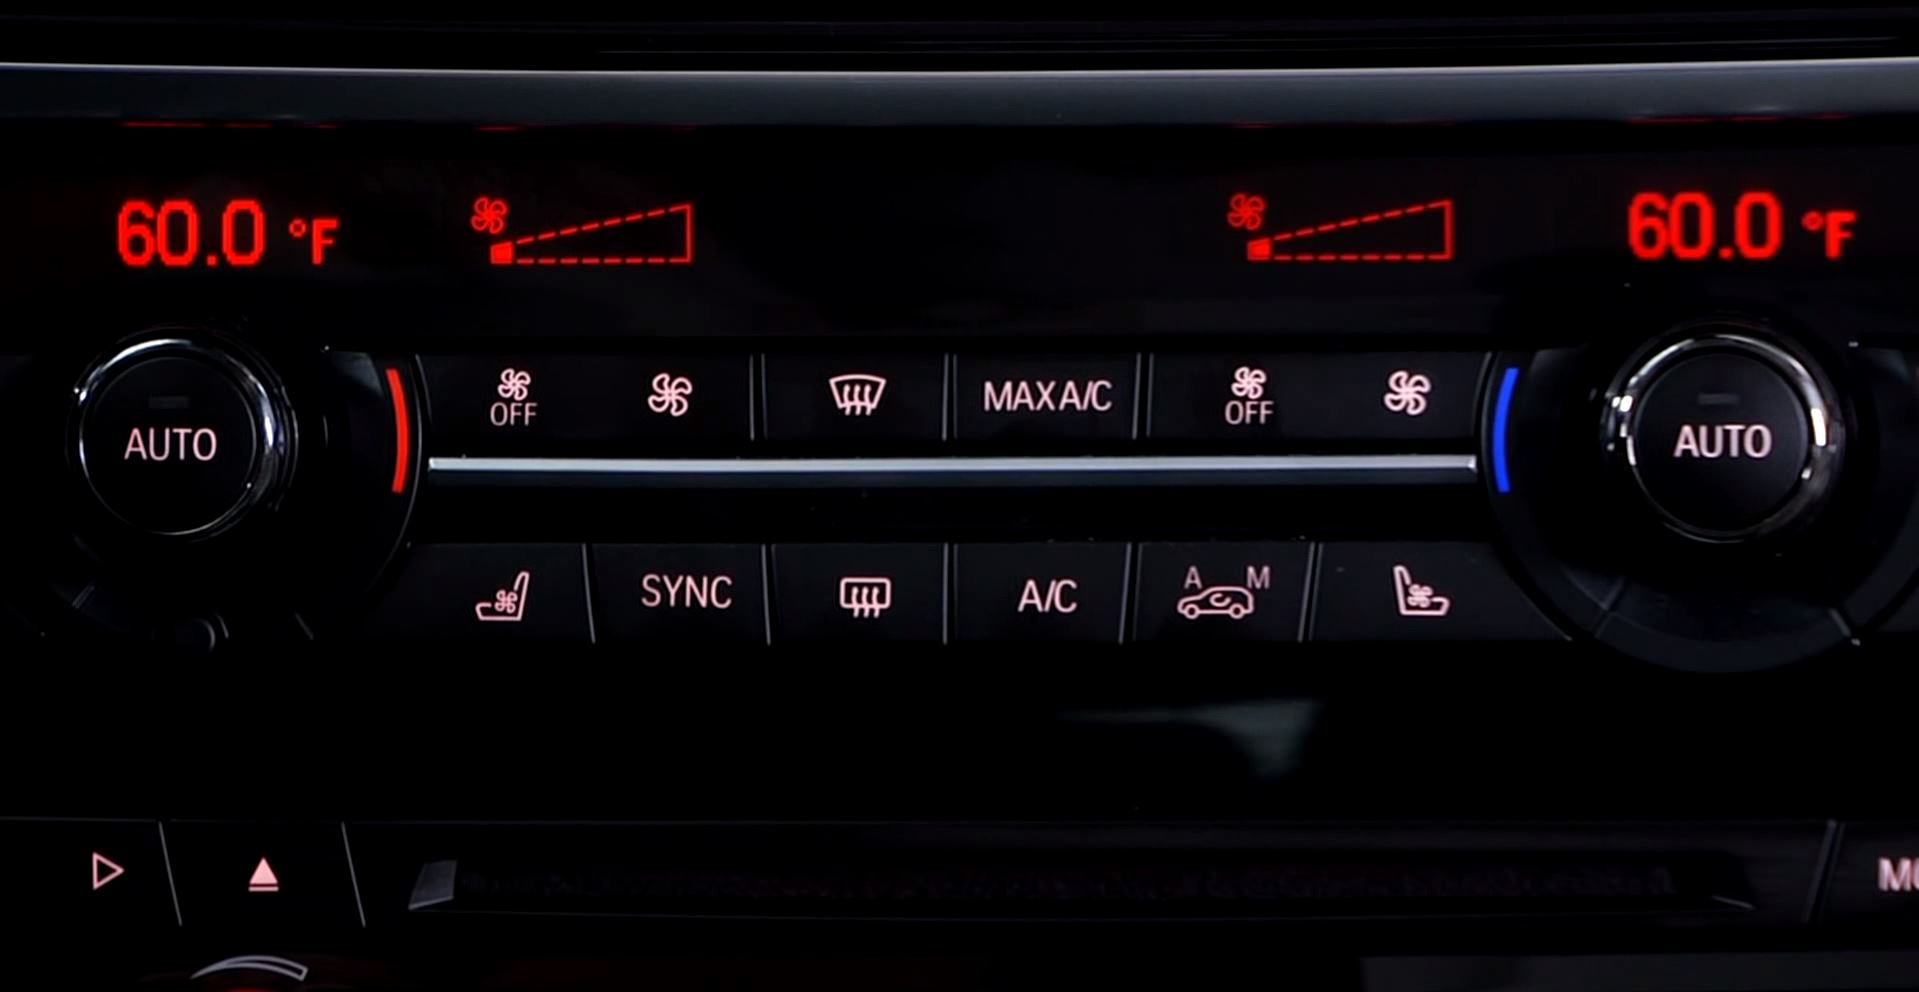 2014 BMW X5 HVAC Buttons Functions Explained - autoevolution